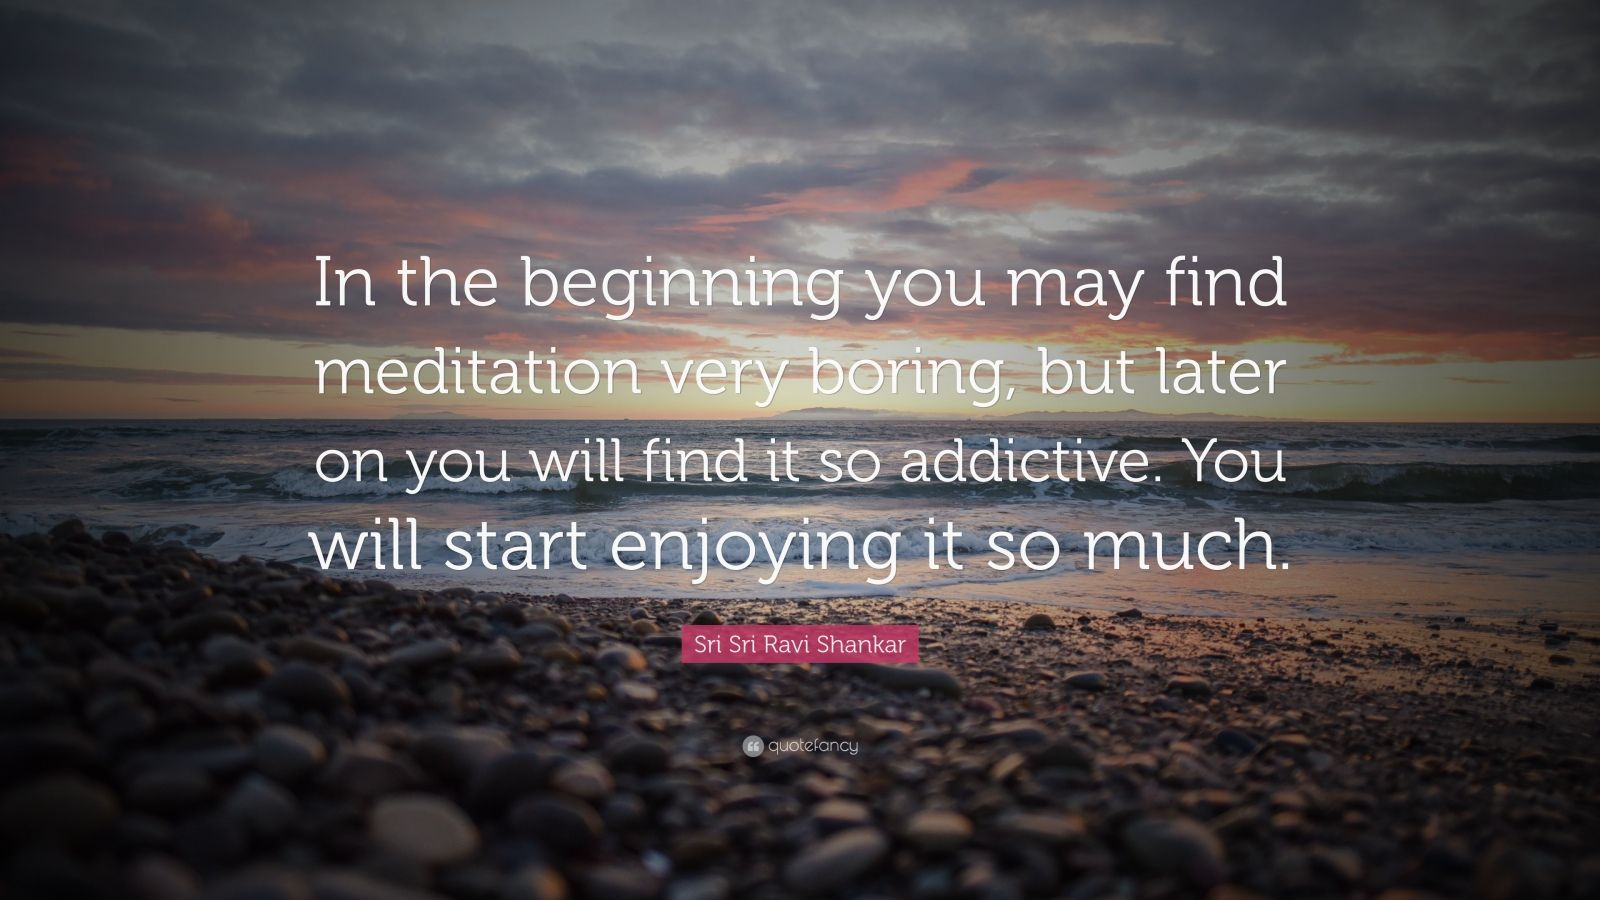 """Sri Sri Ravi Shankar Quote: """"In the beginning you may find meditation very boring, but later on you will find it so addictive. You will start enjoying it so much."""""""